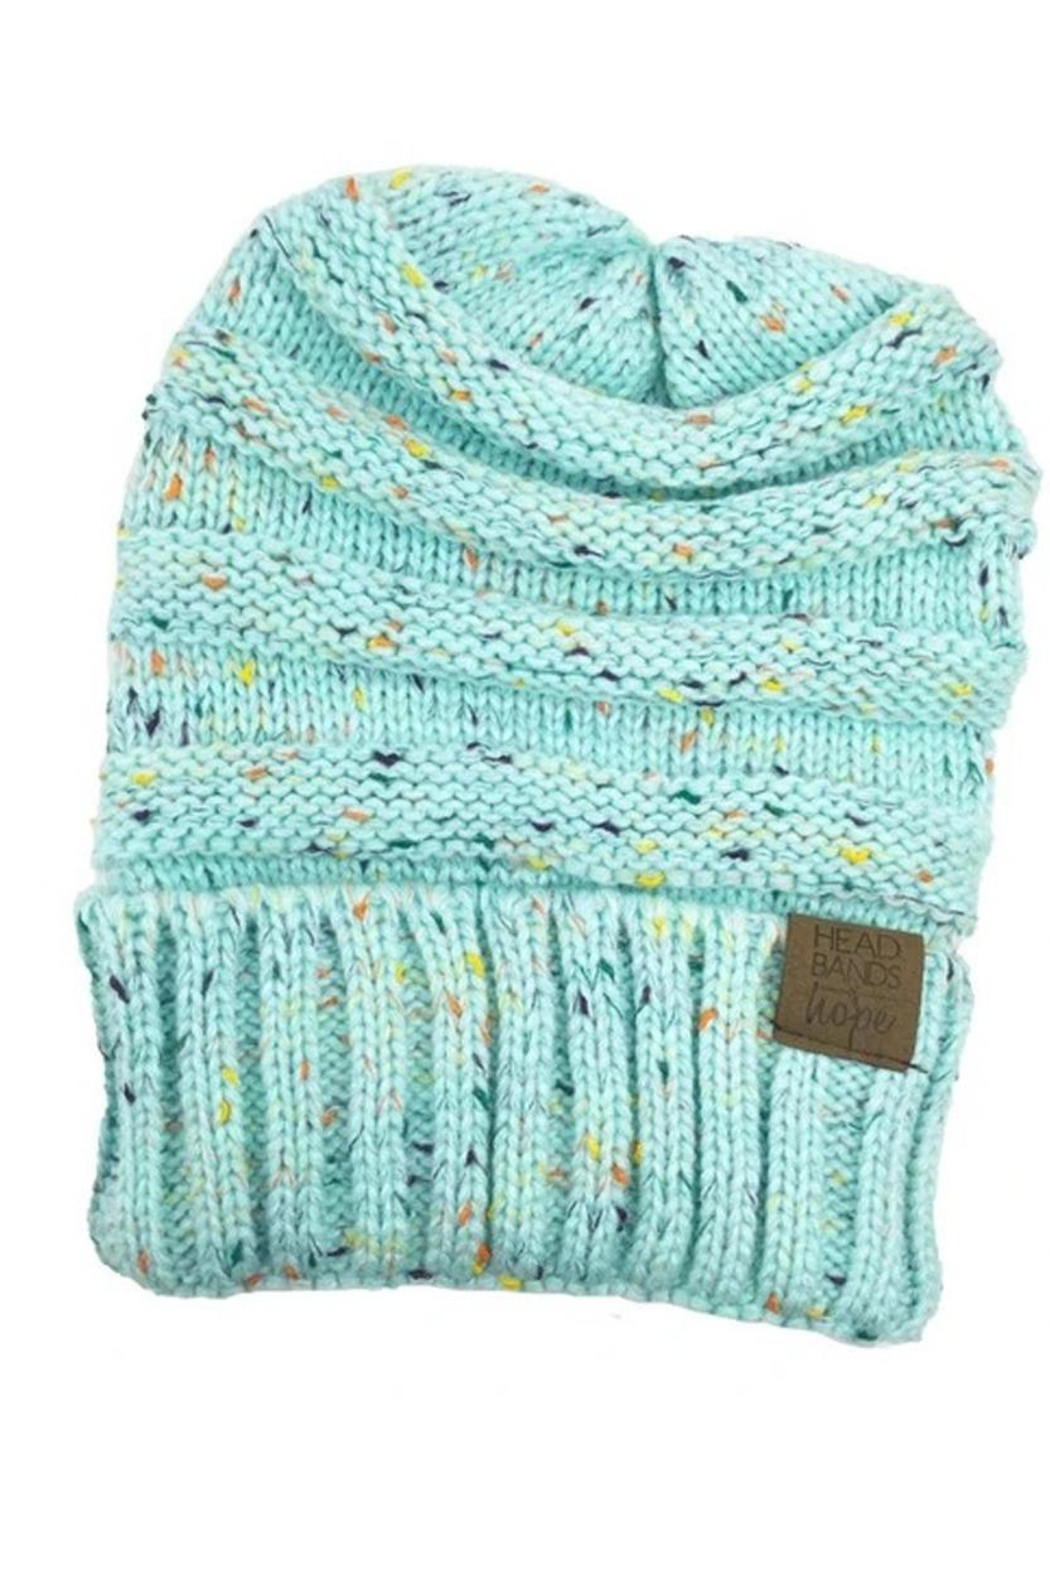 Headbands of Hope Beanie - Main Image